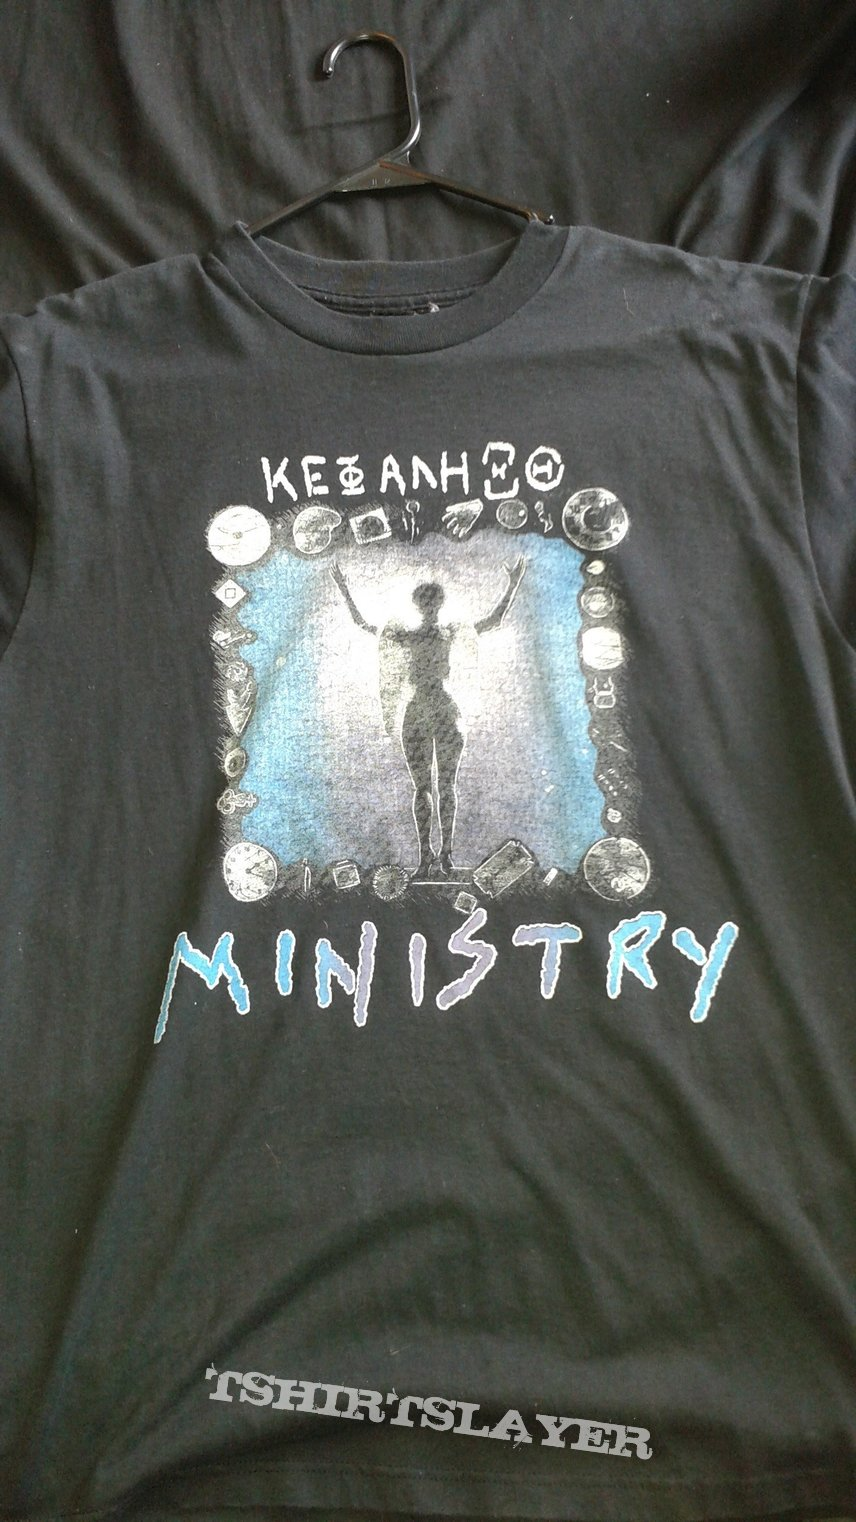 Ministry Psalm 69 Bootleg Tour Shirt with Sepultura and Helmet